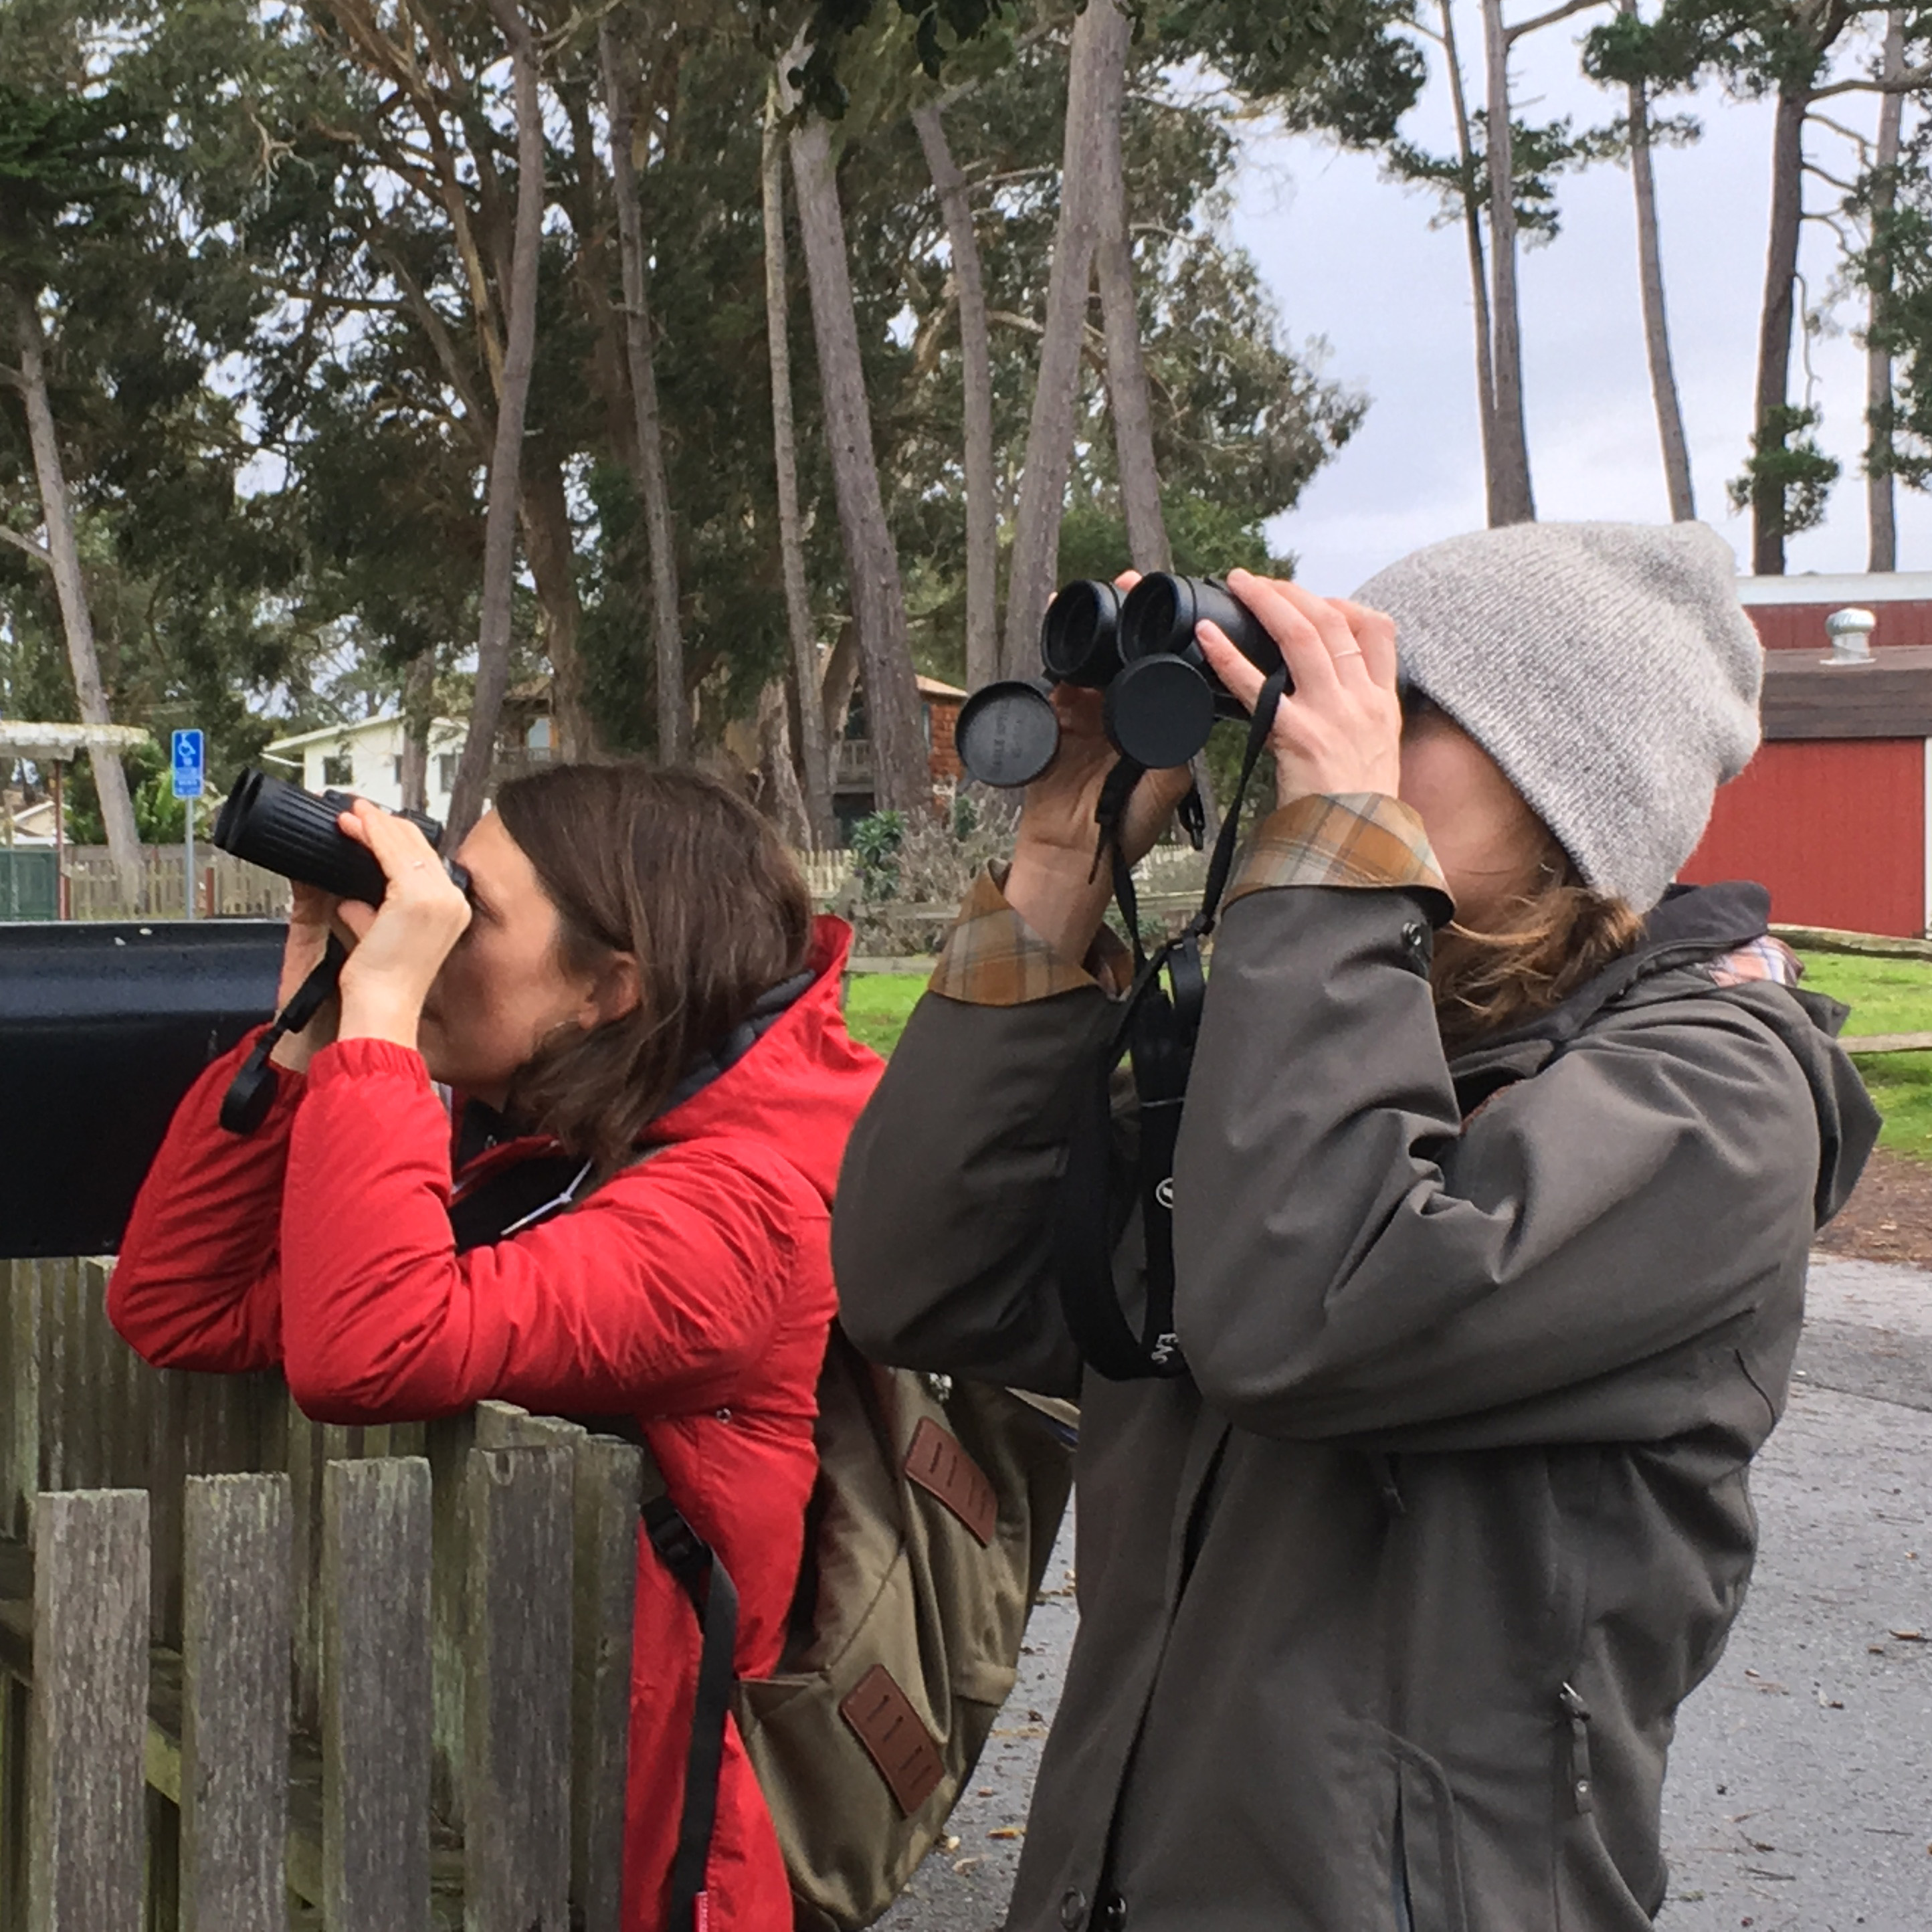 Two women lean against a wooden fence as they gaze at monarchs (which are outside the frame) with binoculars.